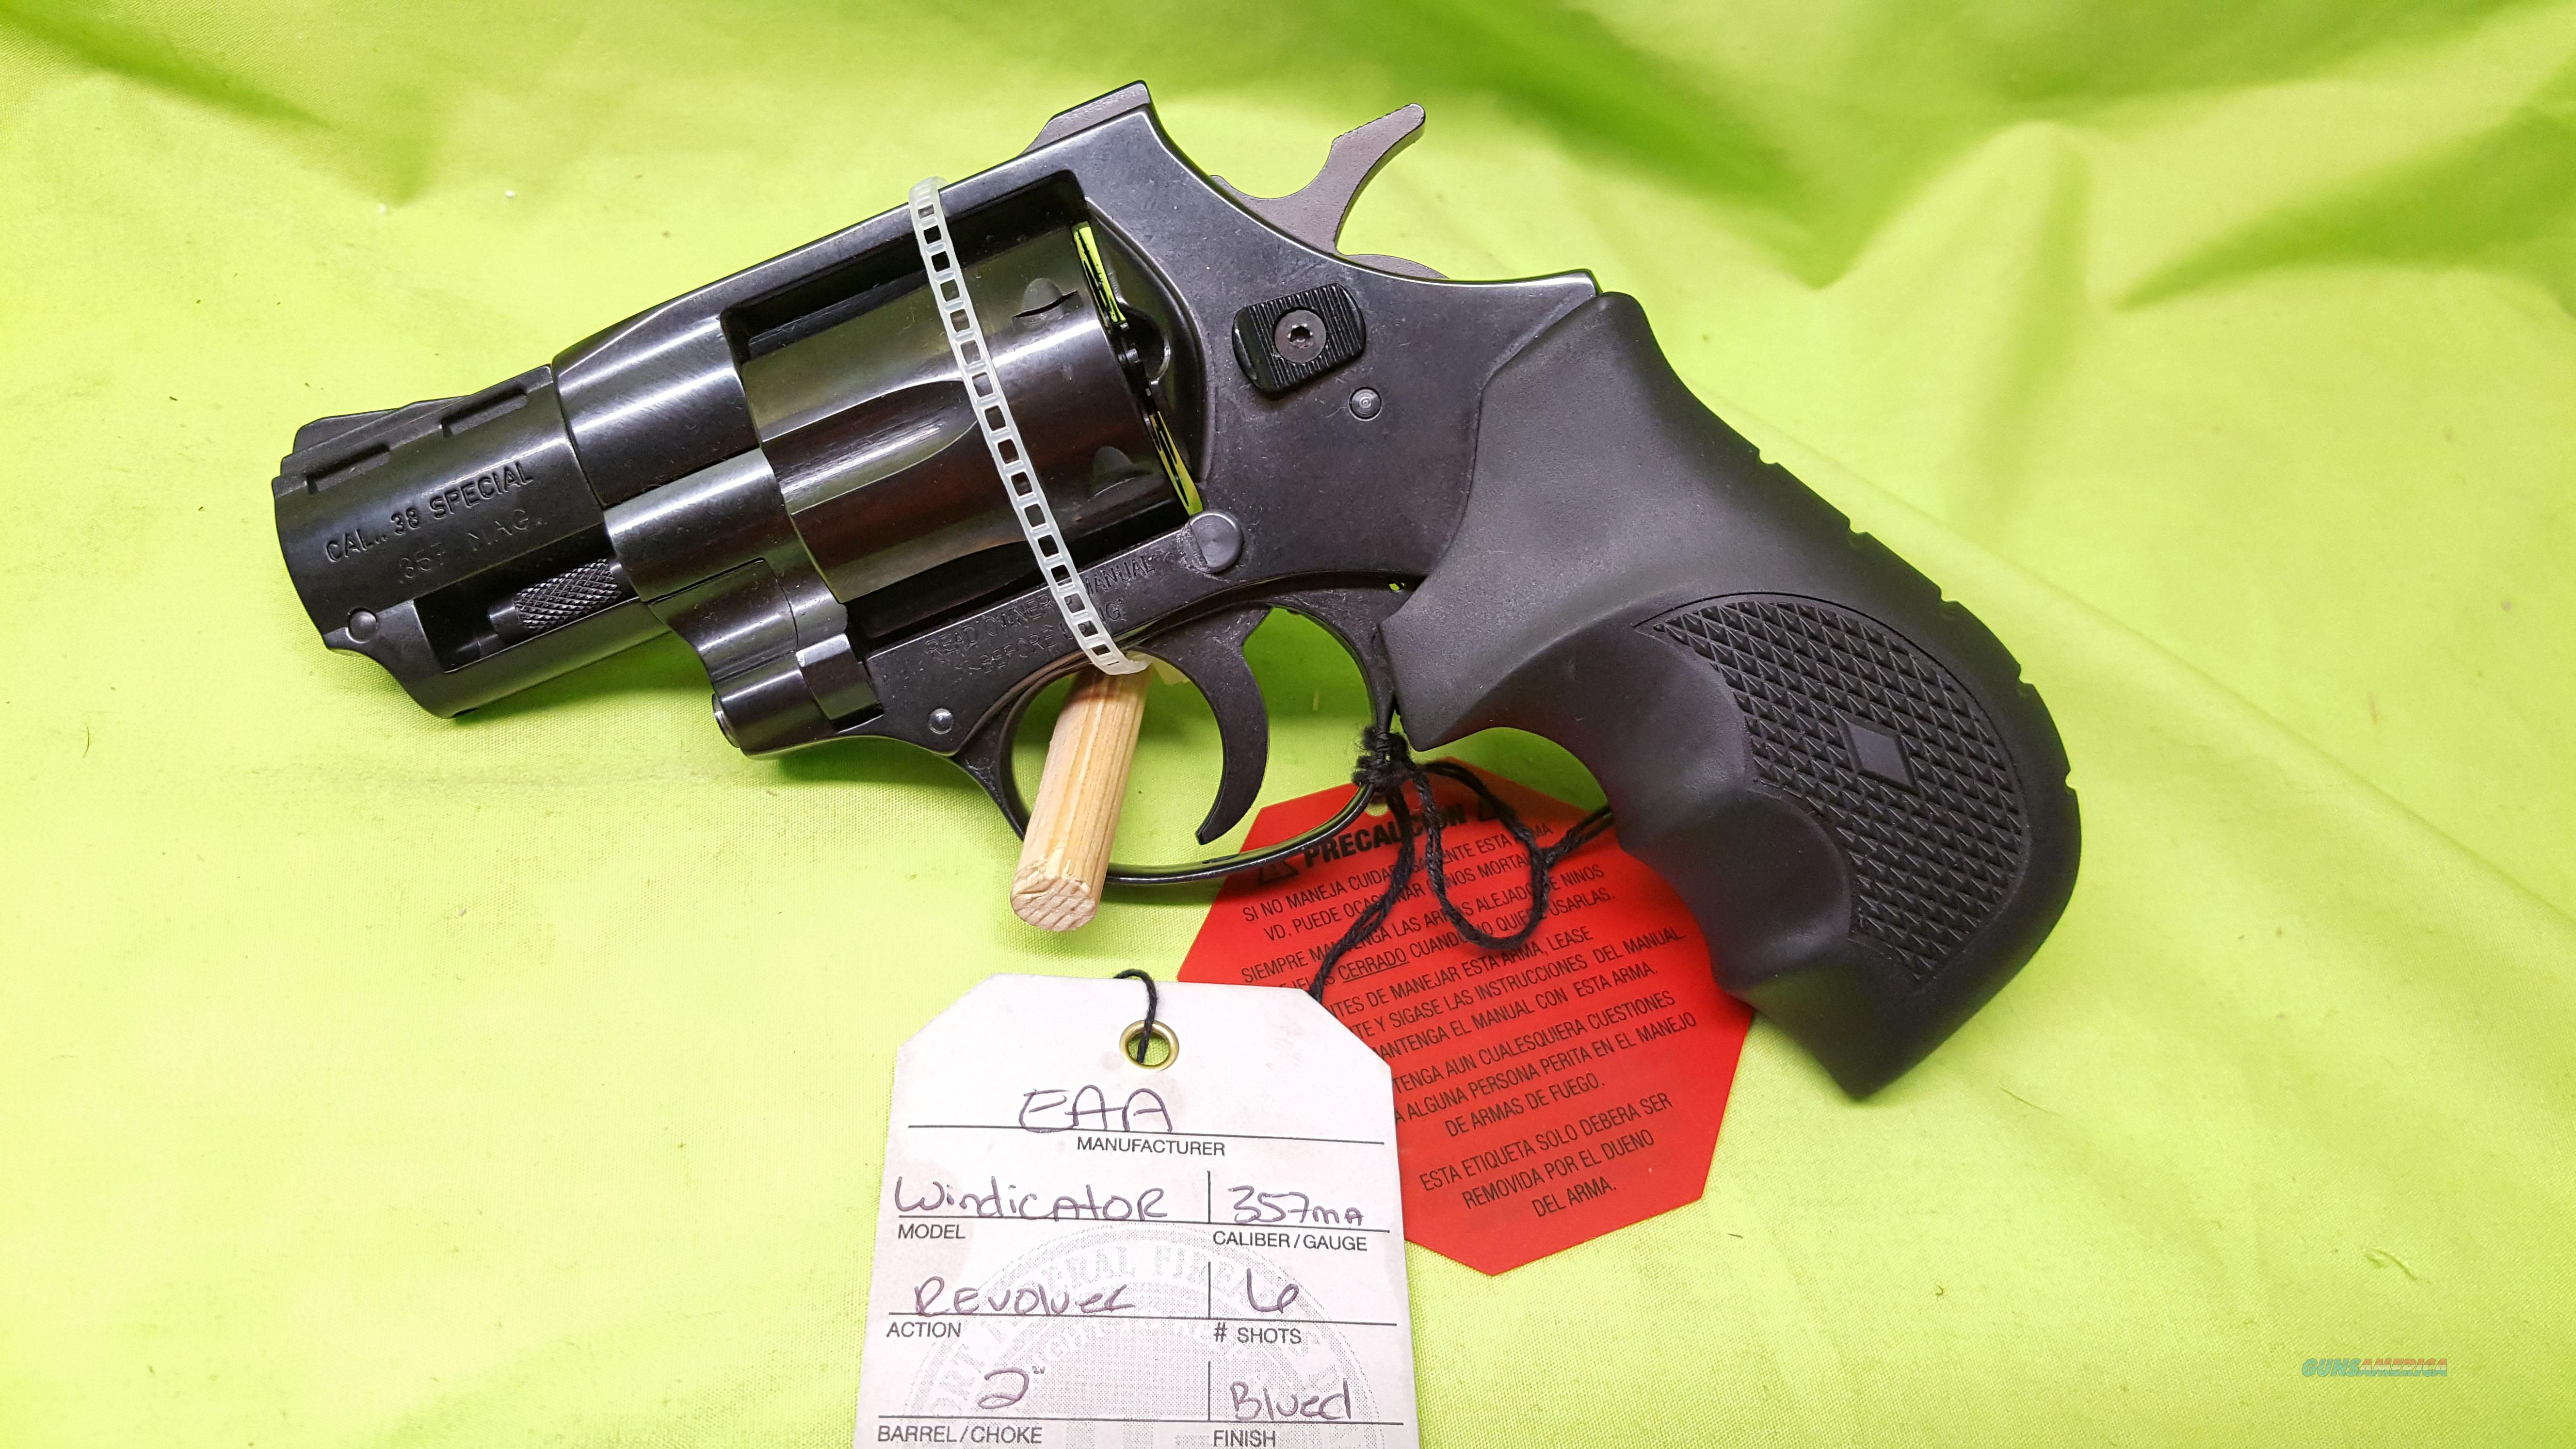 "EAA WINDICATOR .357 357 MAG 6RD 2"" BLK RUBBER  Guns > Pistols > EAA Pistols > Other"